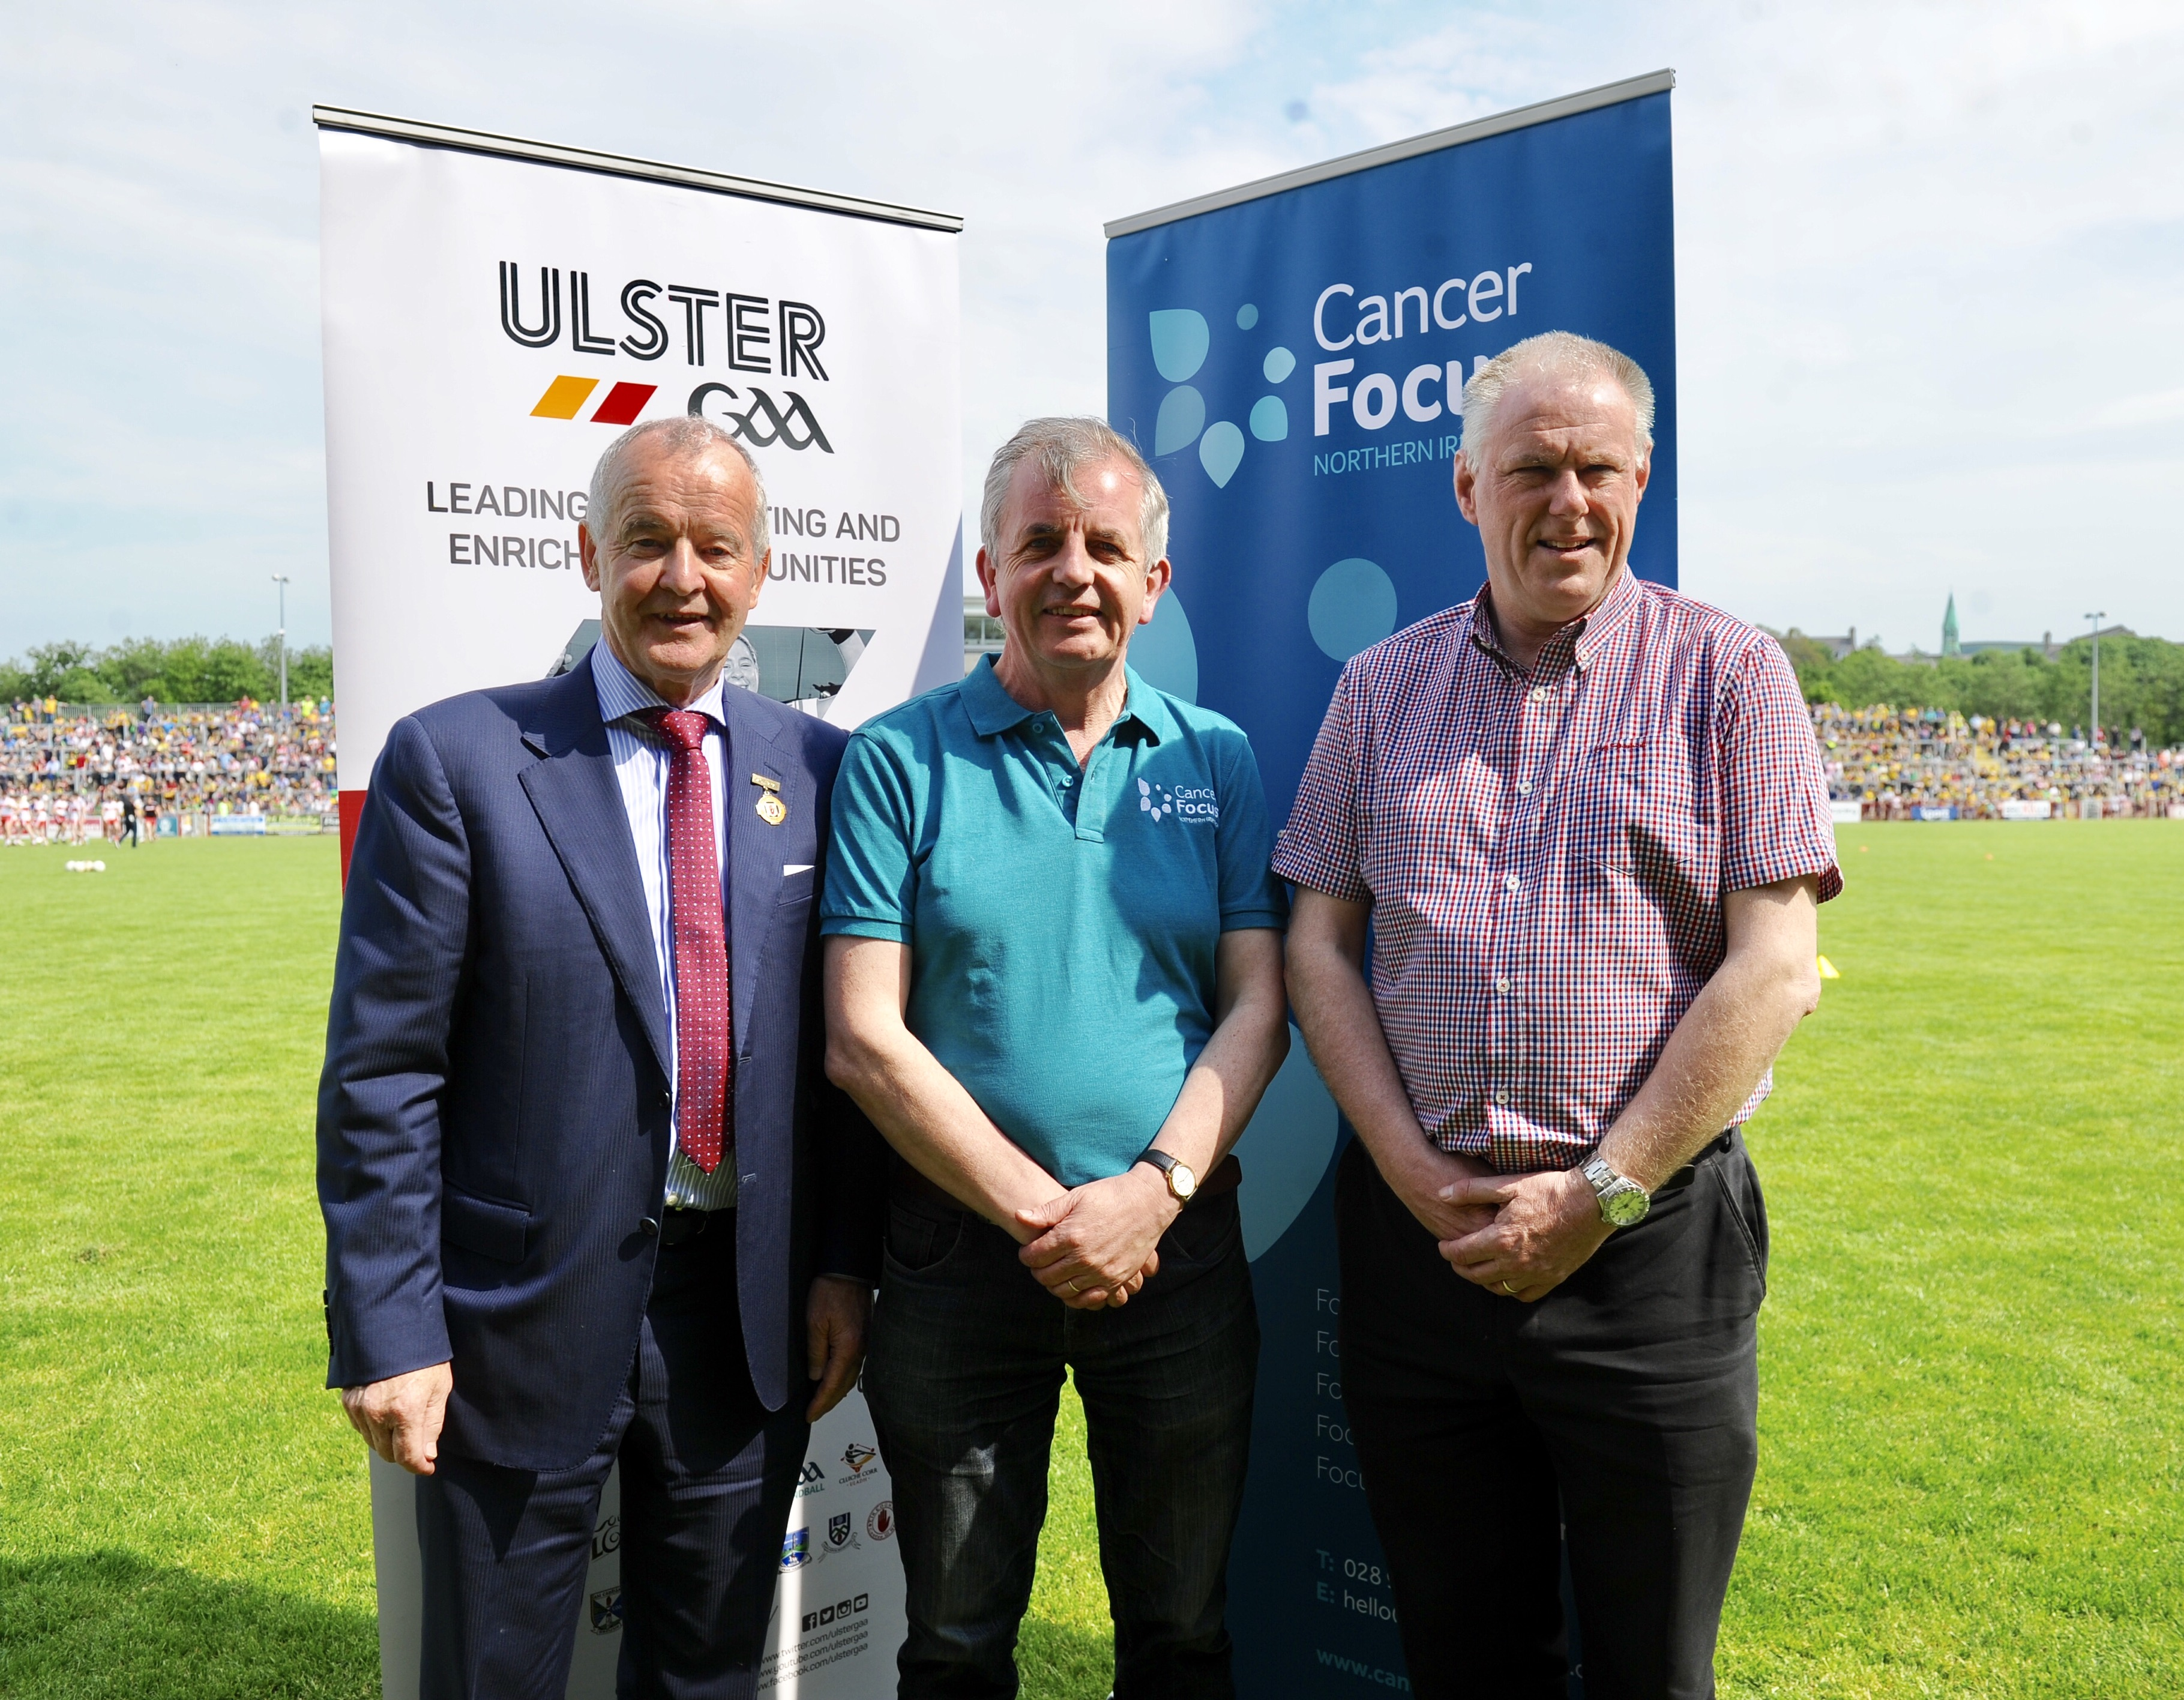 Ulster GAA announce Cancer Focus NI as their Charity Partner 2018